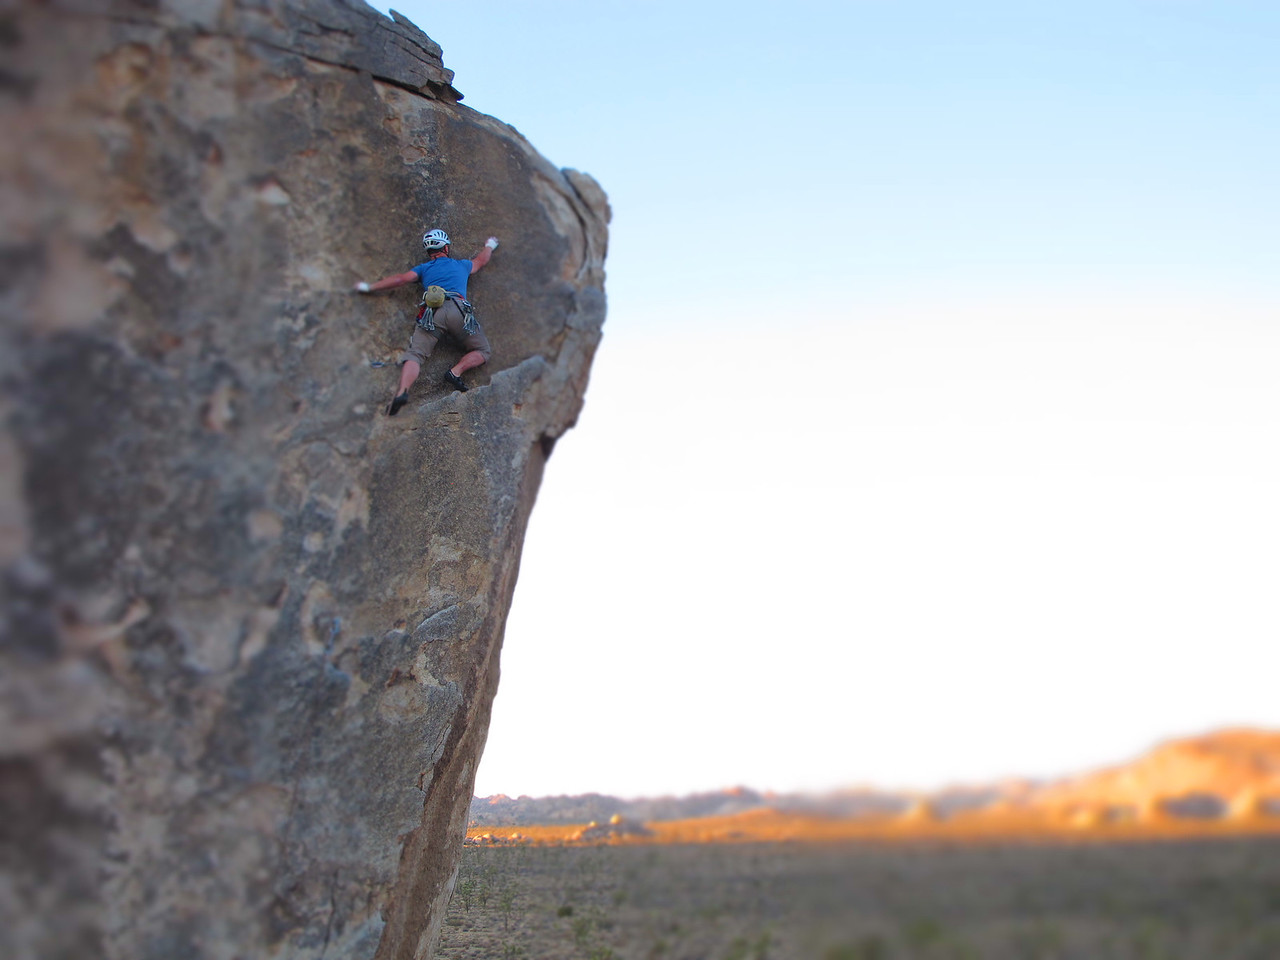 27/10/13 Beer-o-clock as sun sets over Joshua Tree and Mark tops out on an incredibly exposed 5.8.